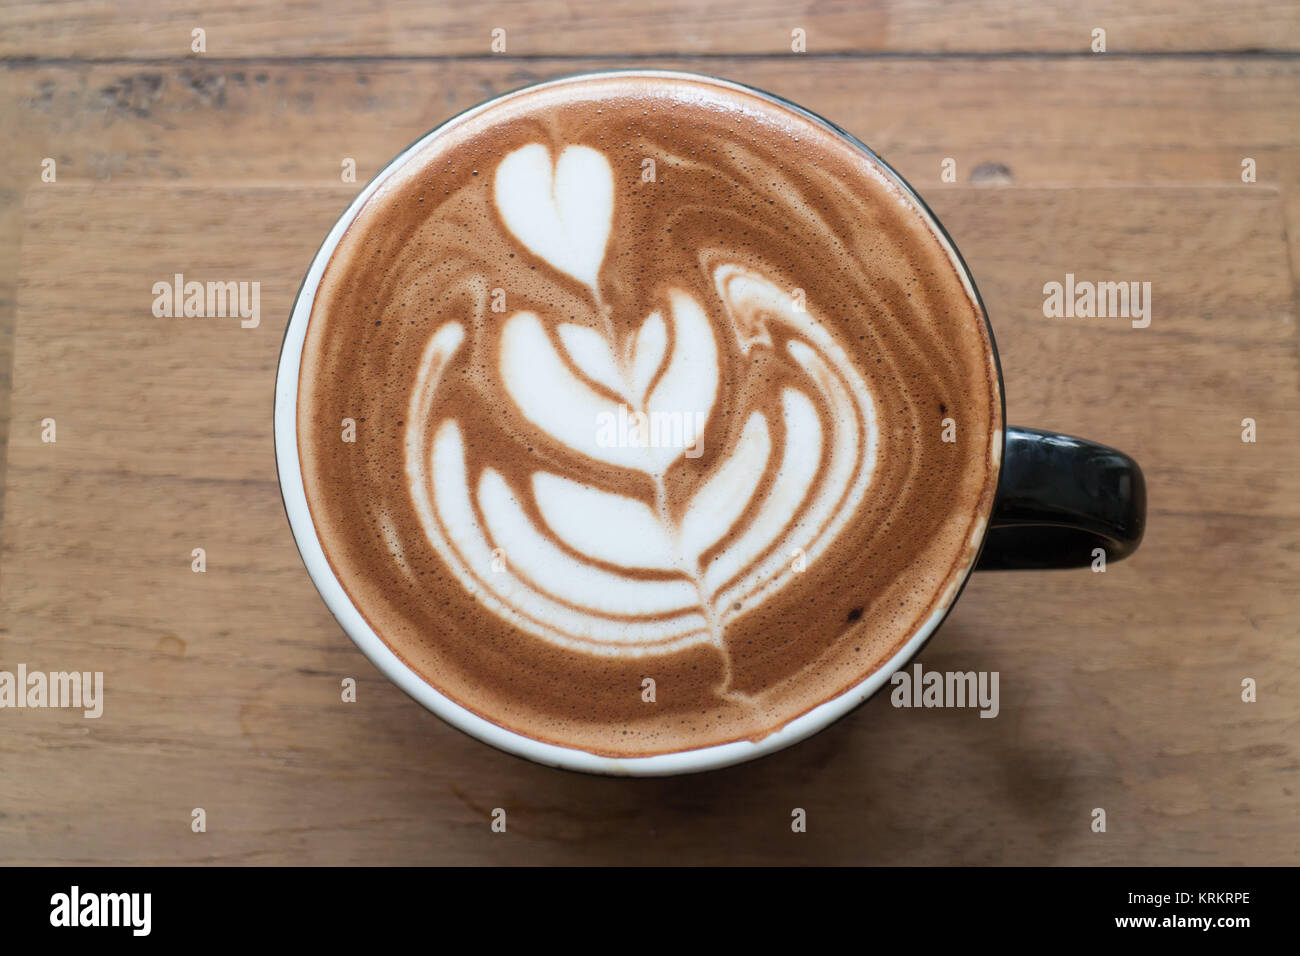 Hot cup of latte art coffee - Stock Image